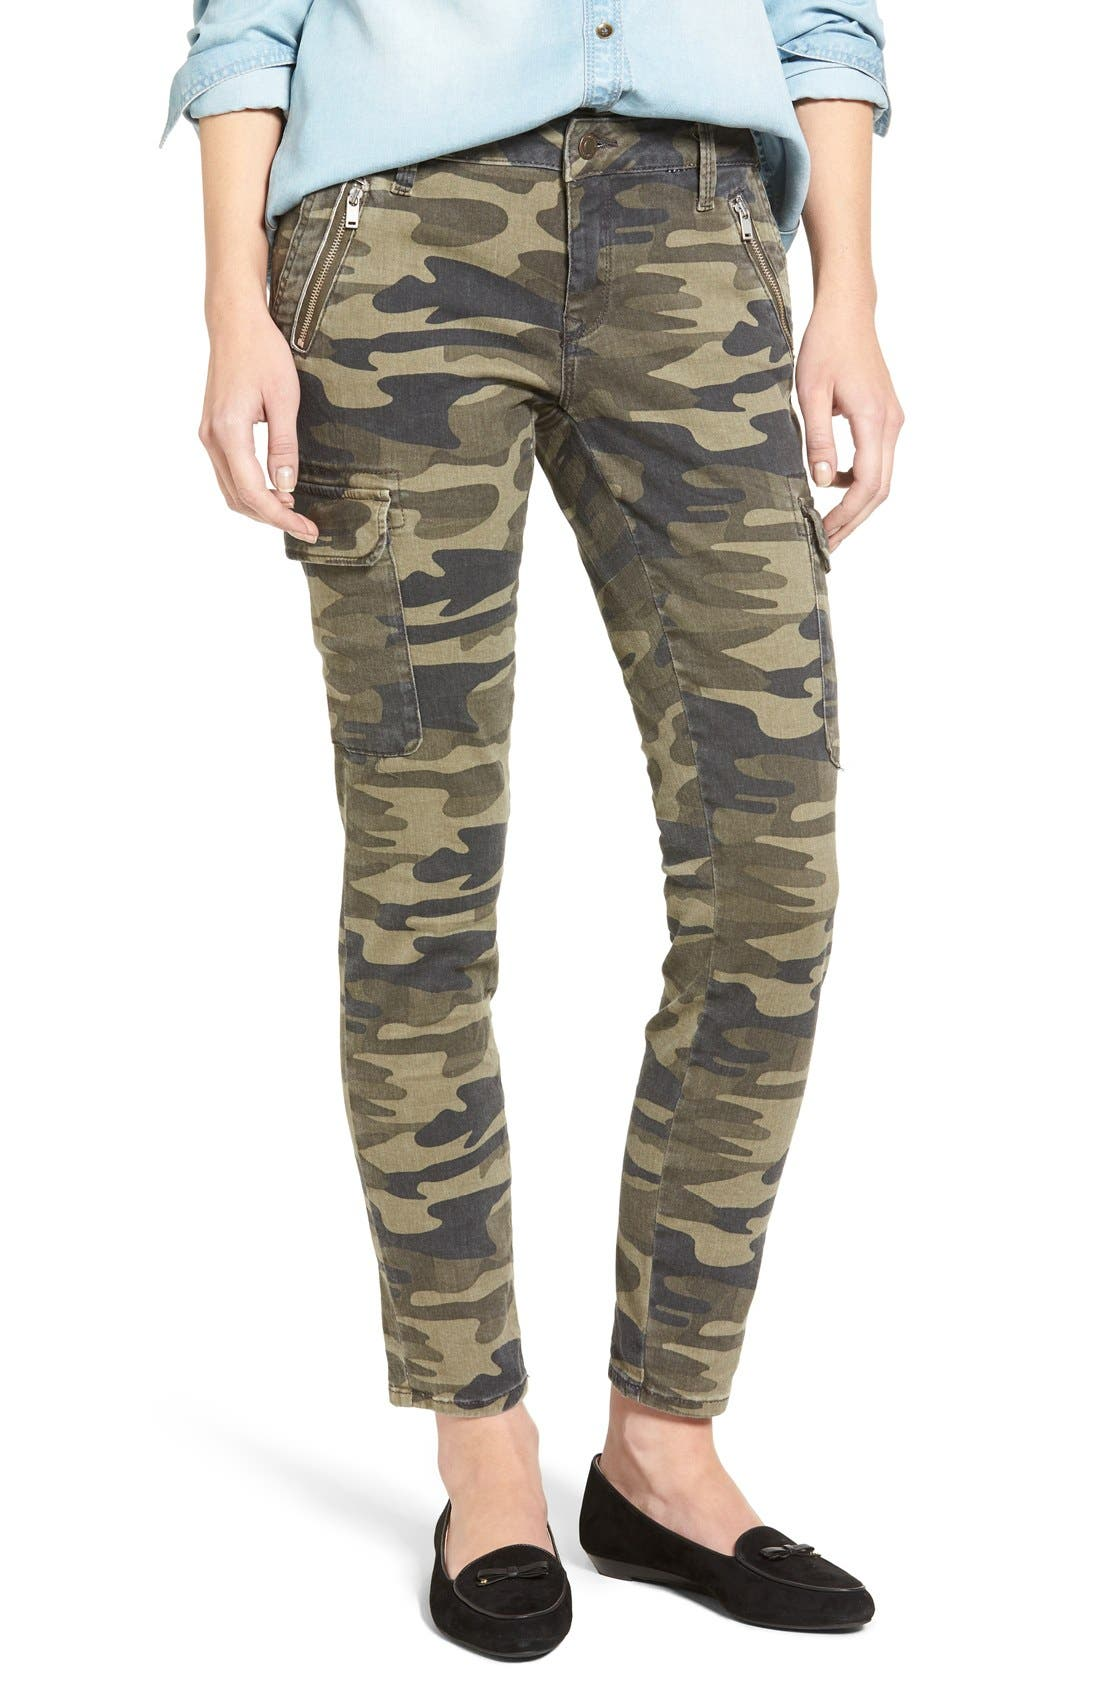 Juliette Camo Print Military Cargo Pants,                             Main thumbnail 1, color,                             MILITARY CAMOUFLAGE